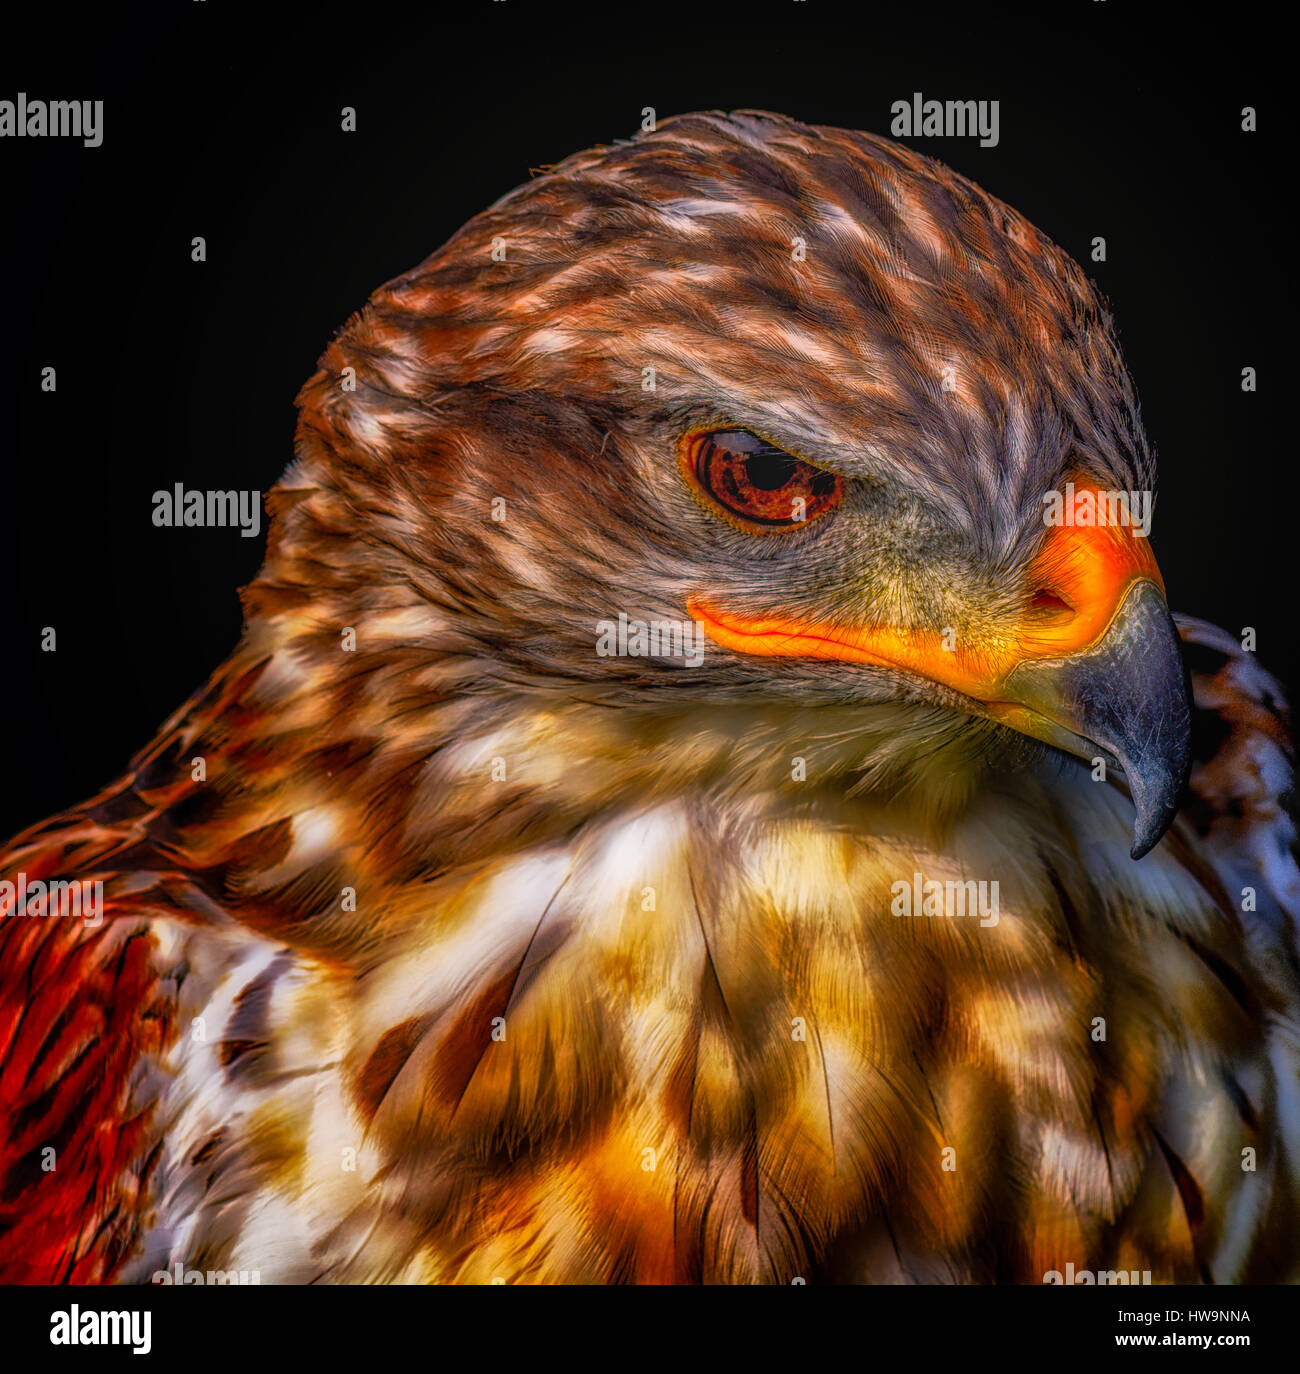 Intense Color Headshot Portrait of a hawk looking angry on black background - Stock Image